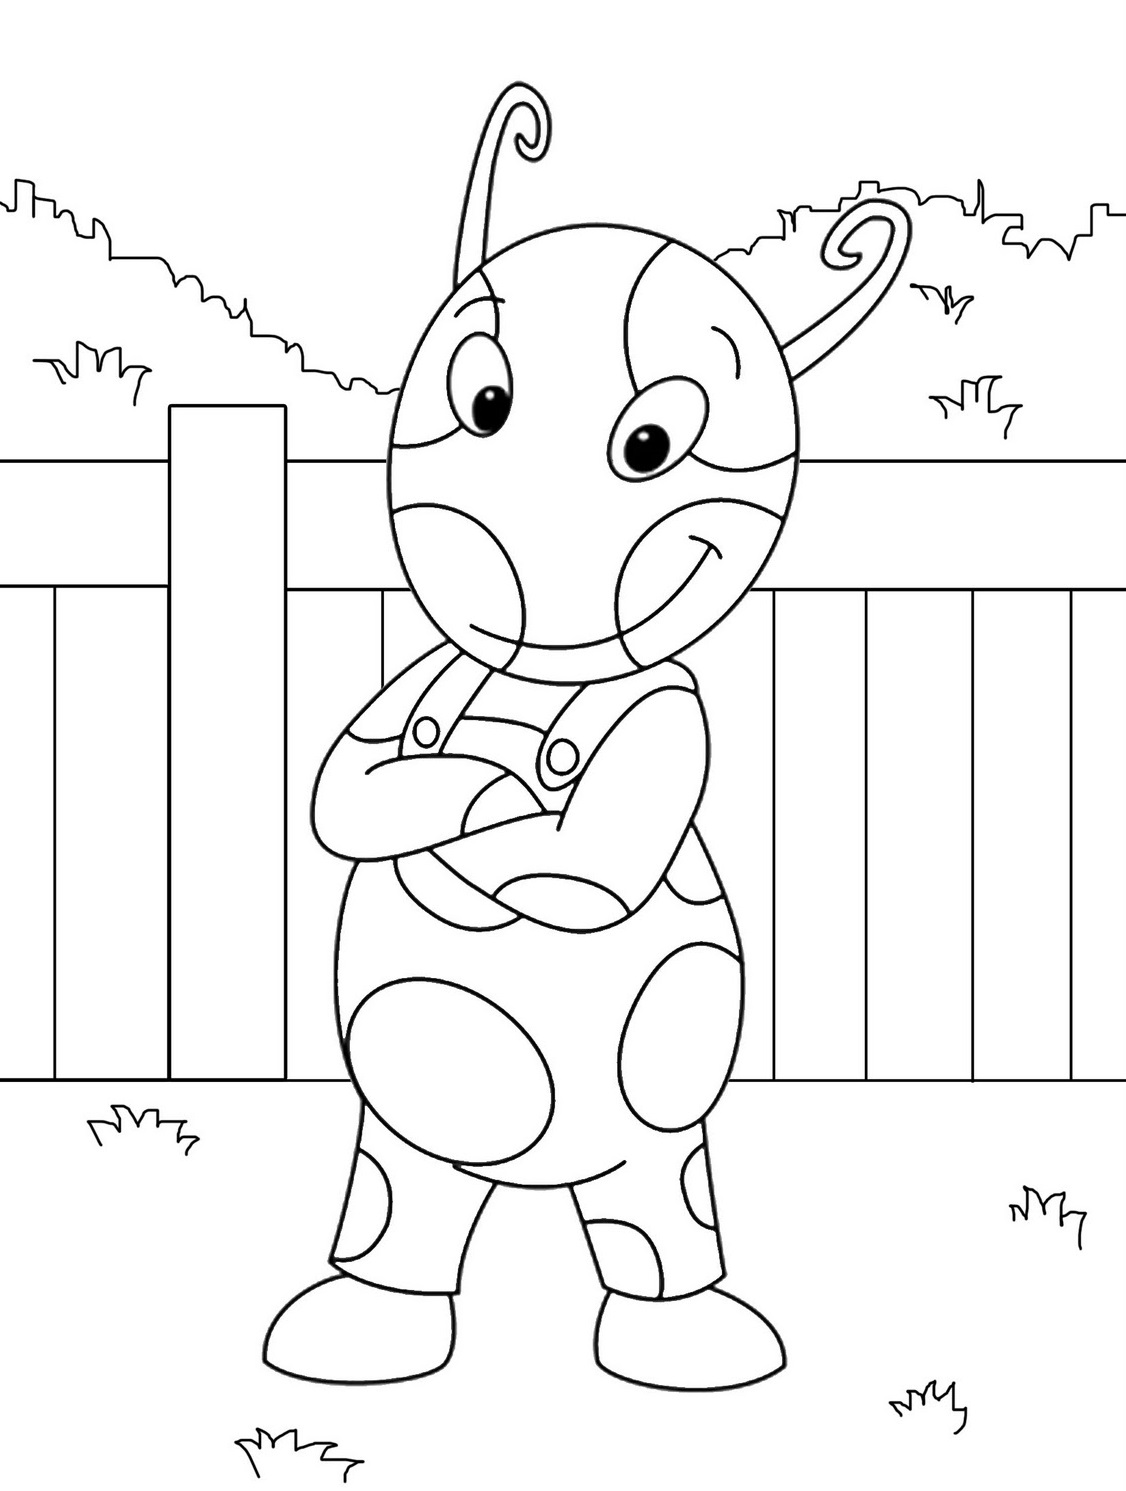 backyardigans-colorable